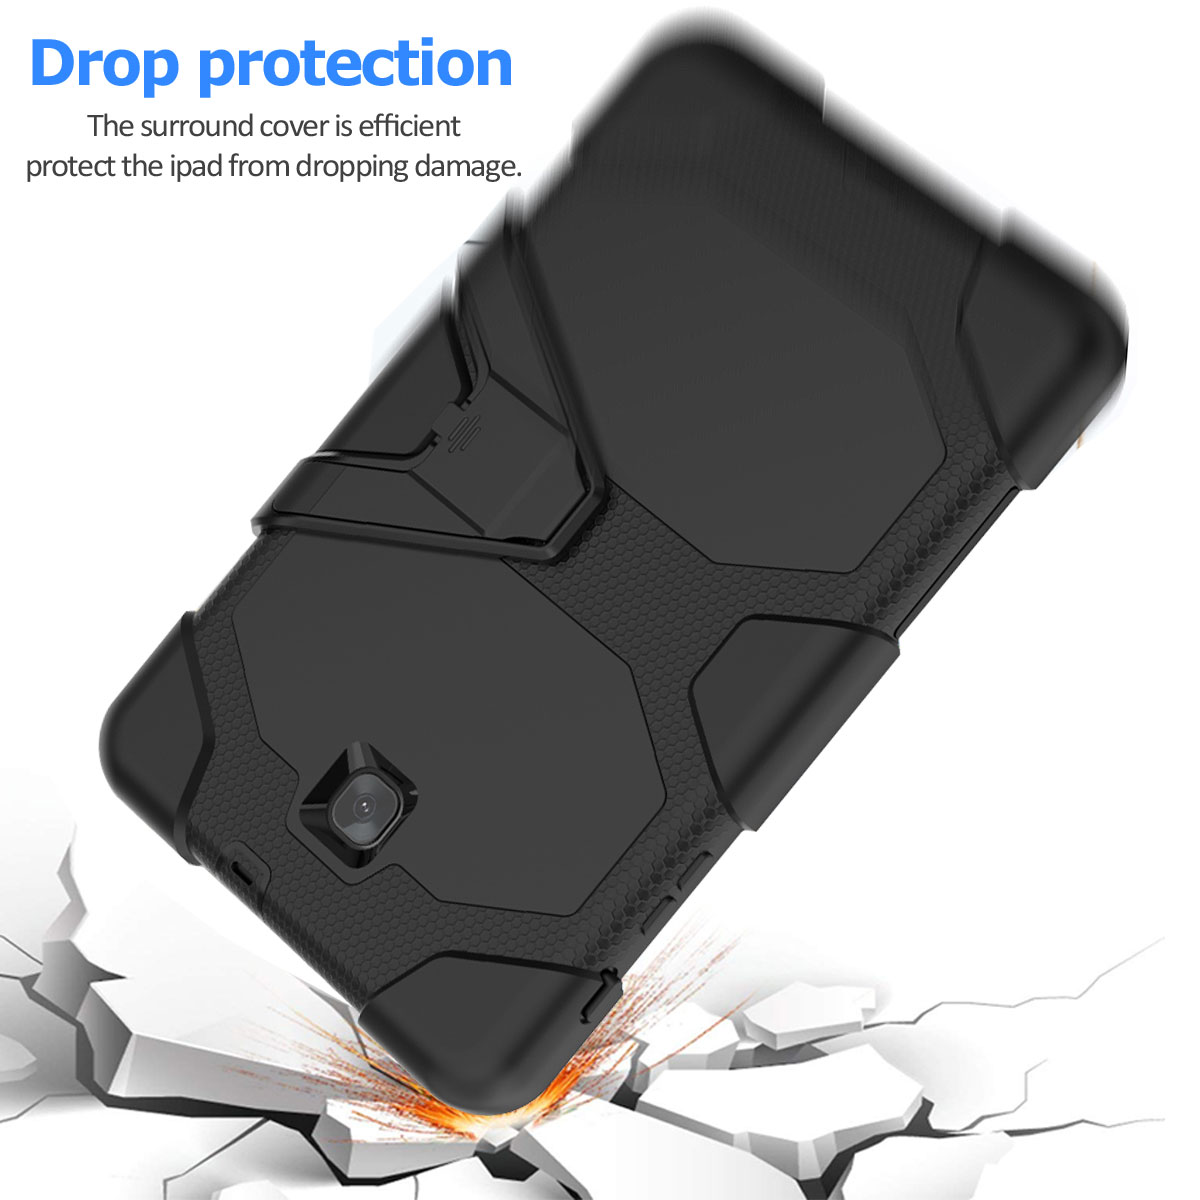 Rugged-Hard-Case-For-Samsung-Galaxy-Tab-A-8-0-2018-SM-T387-with-Screen-Protector thumbnail 61